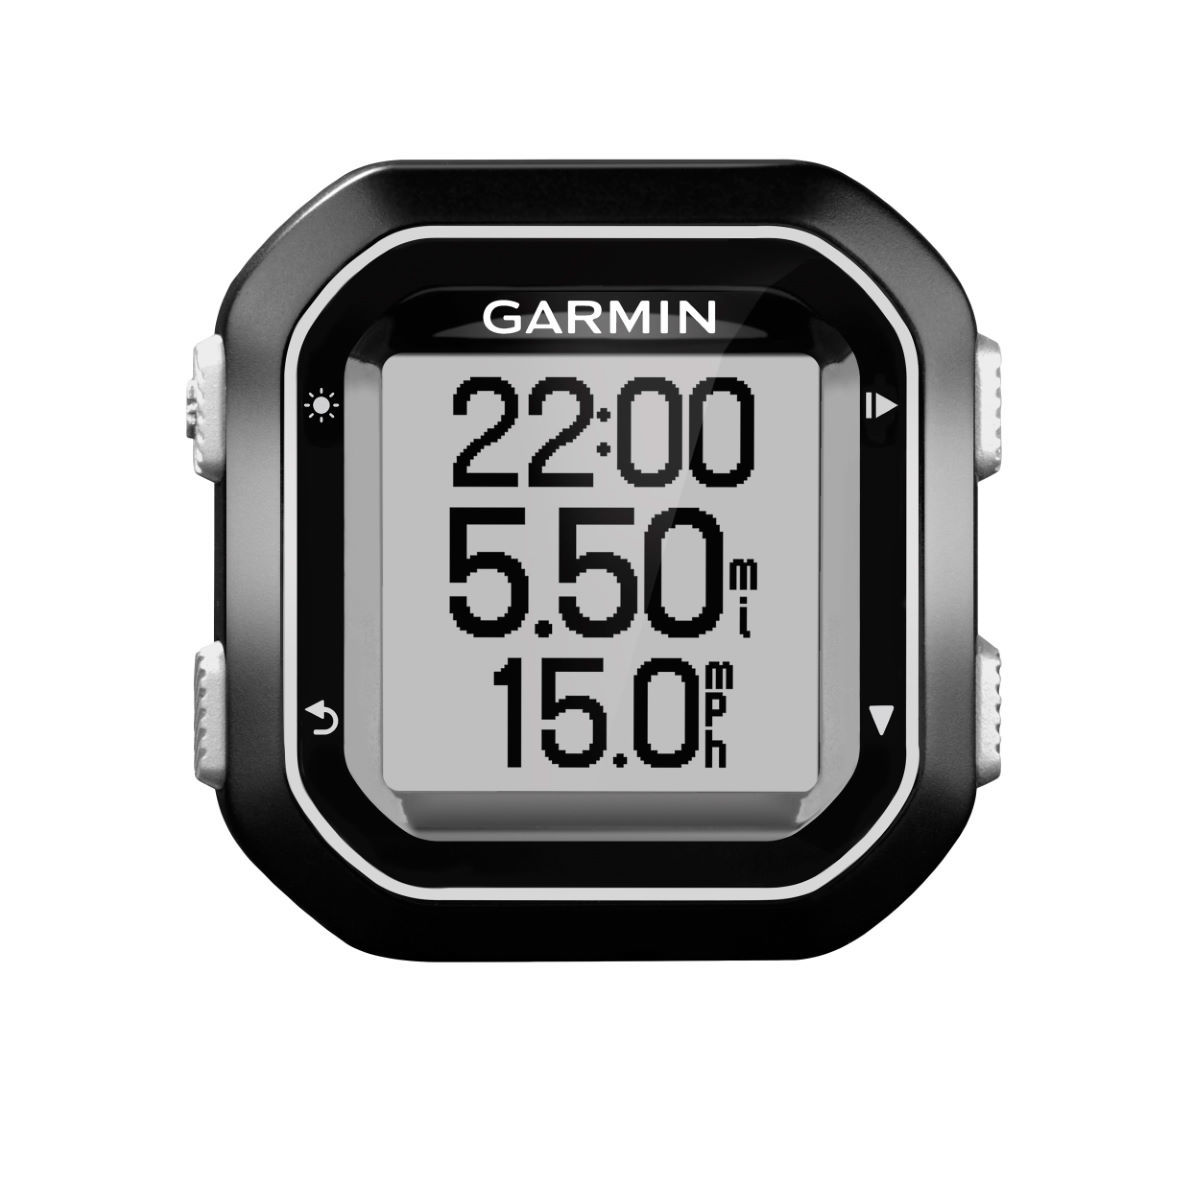 Garmin Edge 25 GPS Cycle Computer   GPS Cycle Computers